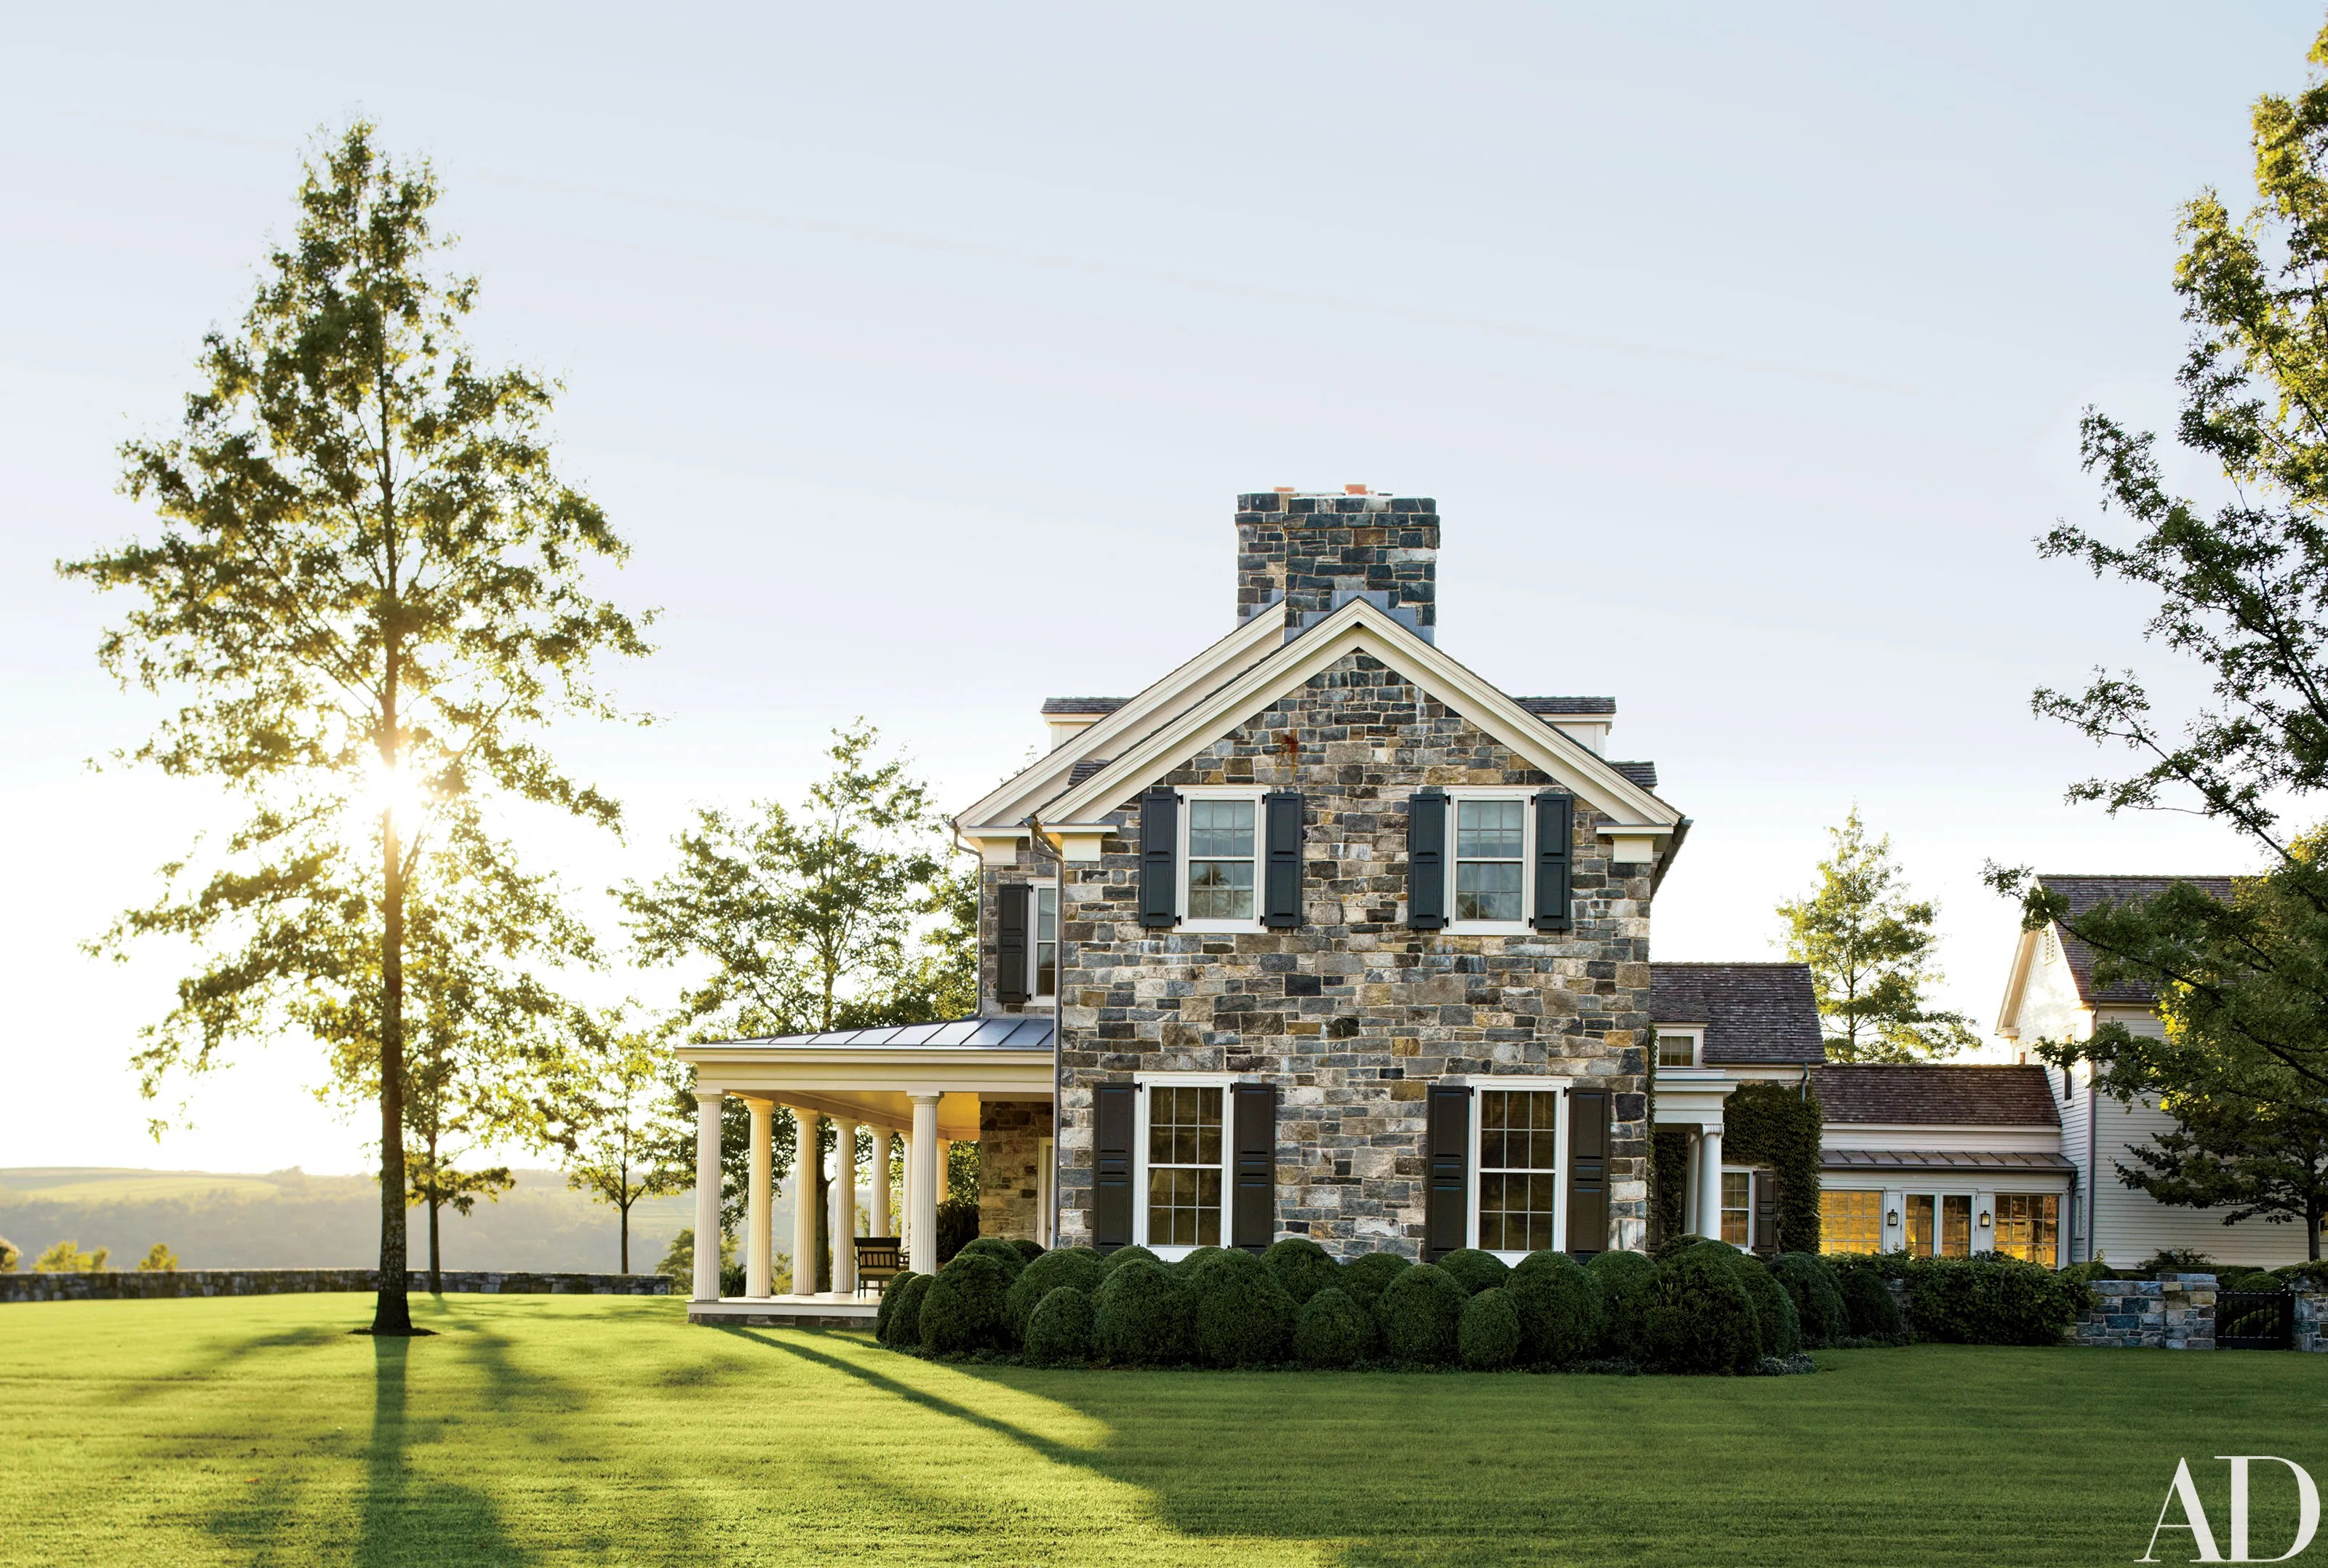 A Picturesque New York Farmhouse Embodies Historical